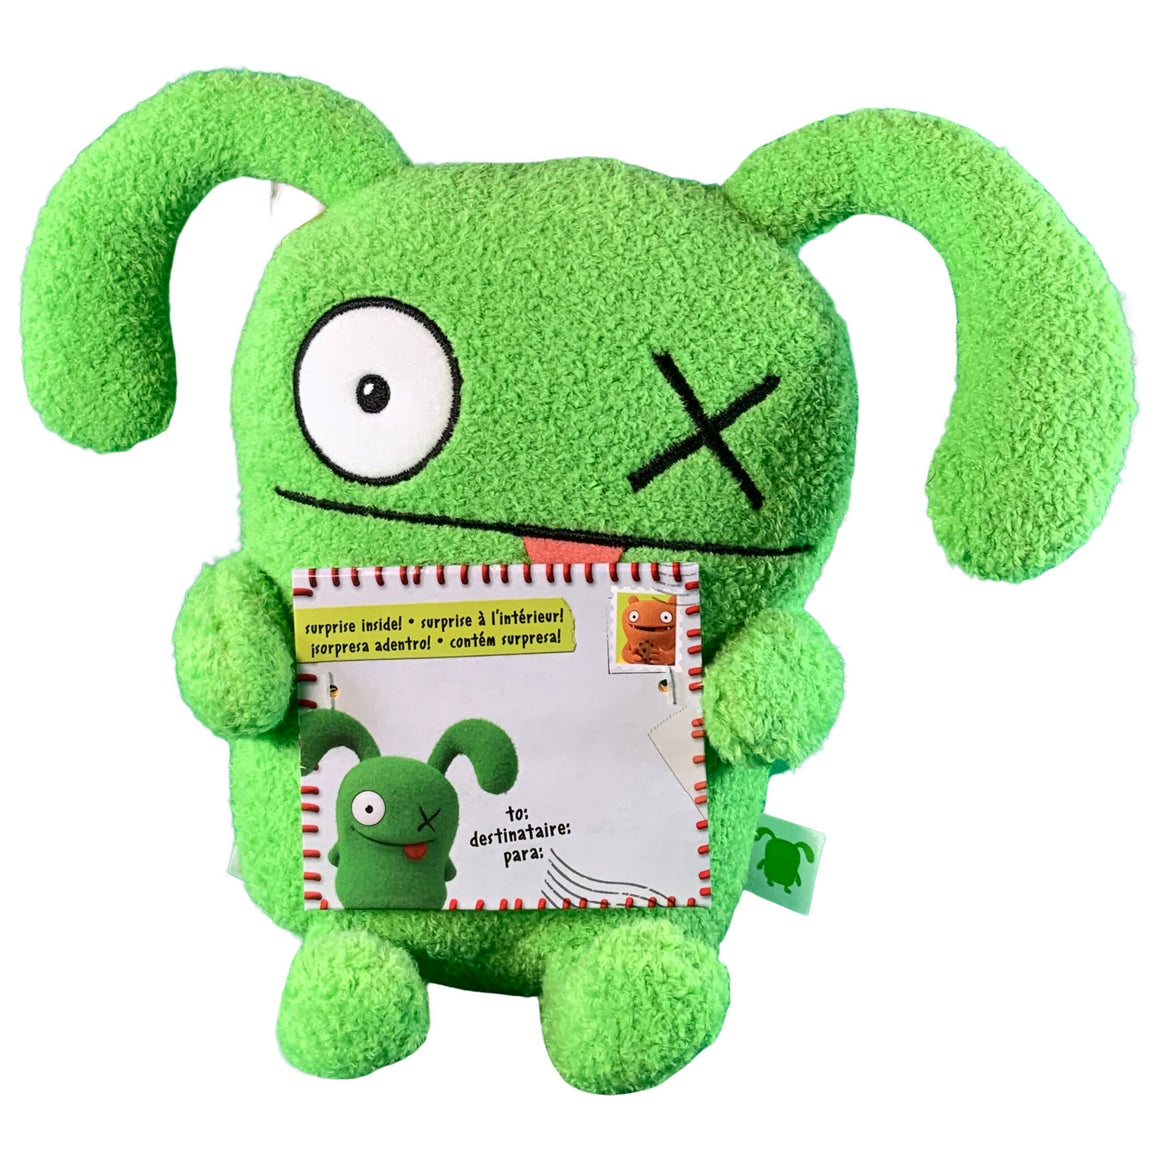 Jokingly Yours Ox Stuffed Plush Toy, 9.5 Inches Tall - Uglydolls